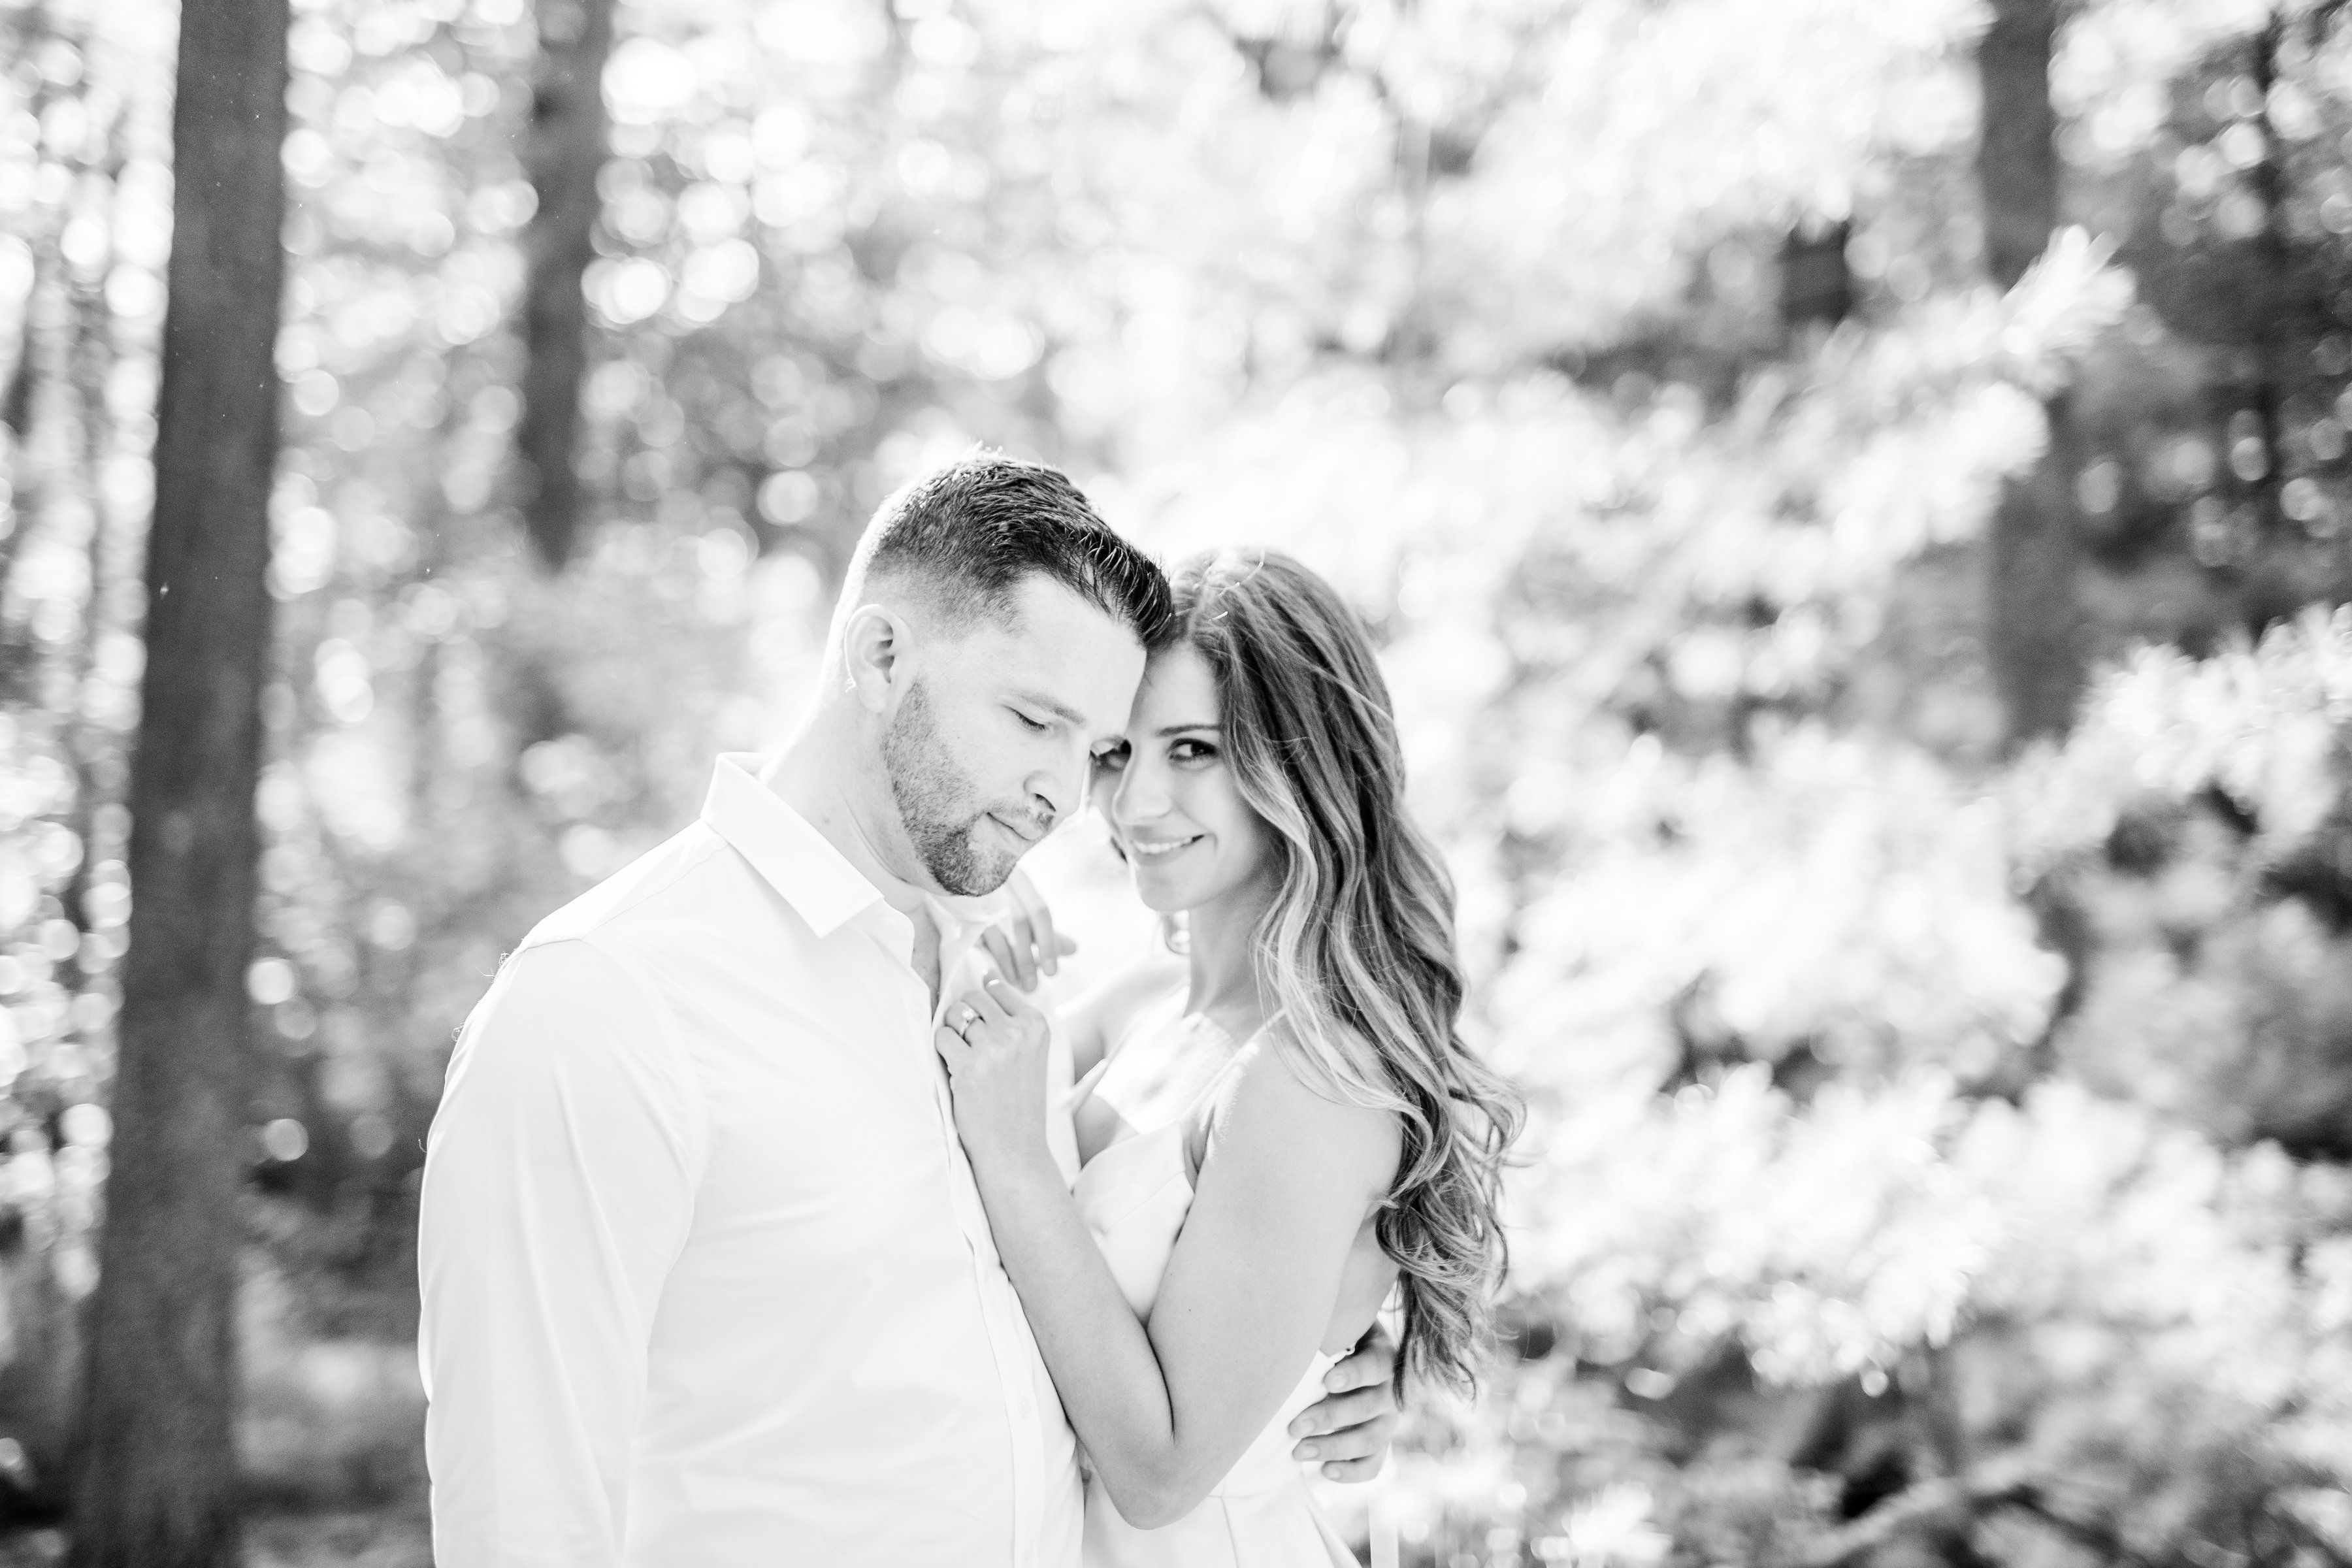 Prosser Pines Engagement Shoot | Long Island Wedding Photographer | Hamptons Wedding Photographer19